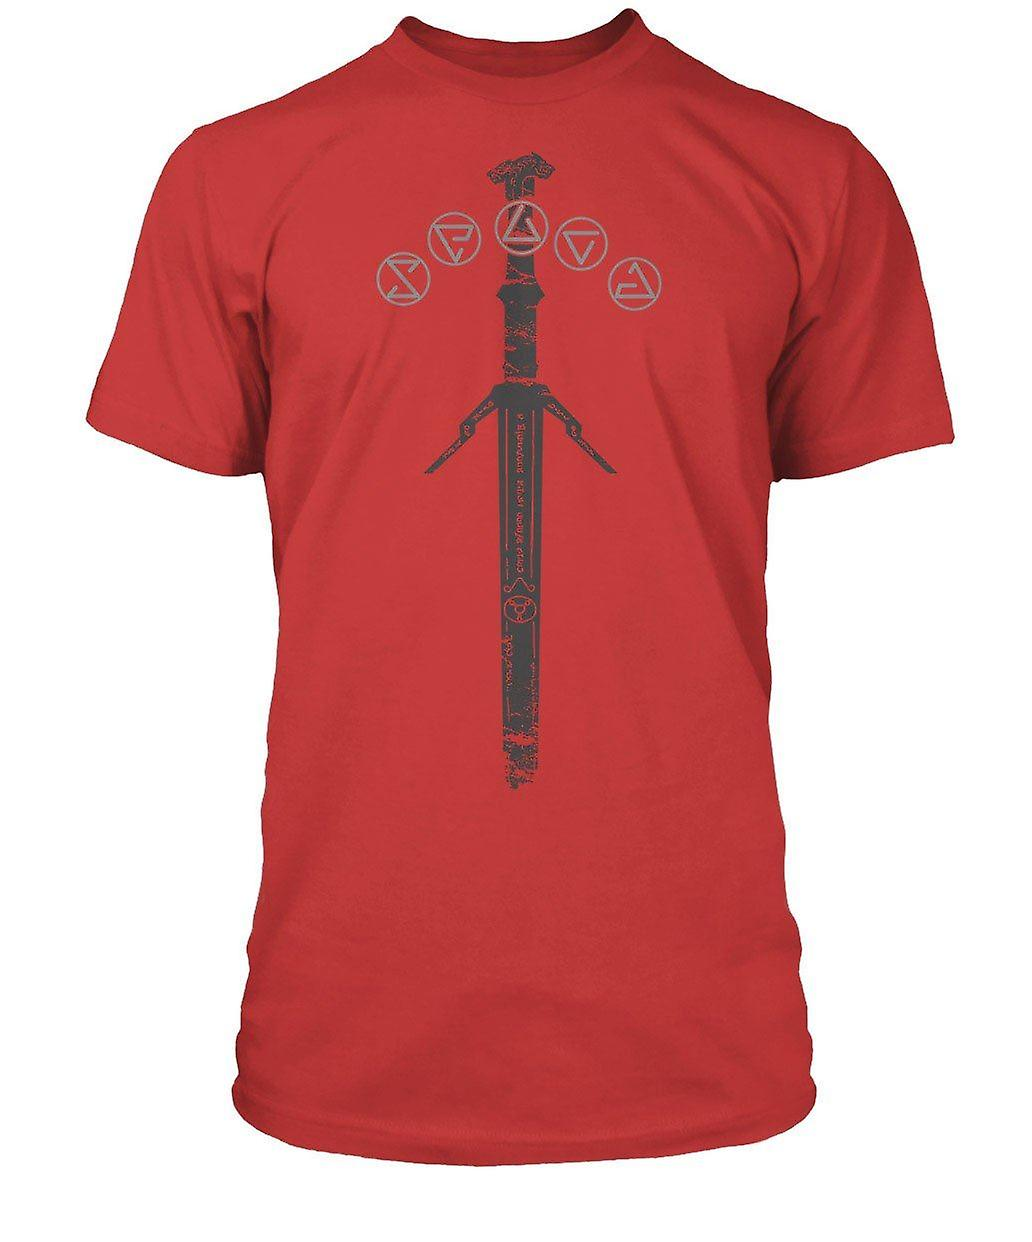 The Witcher 3 Silver Sword Premium Tee SMALL